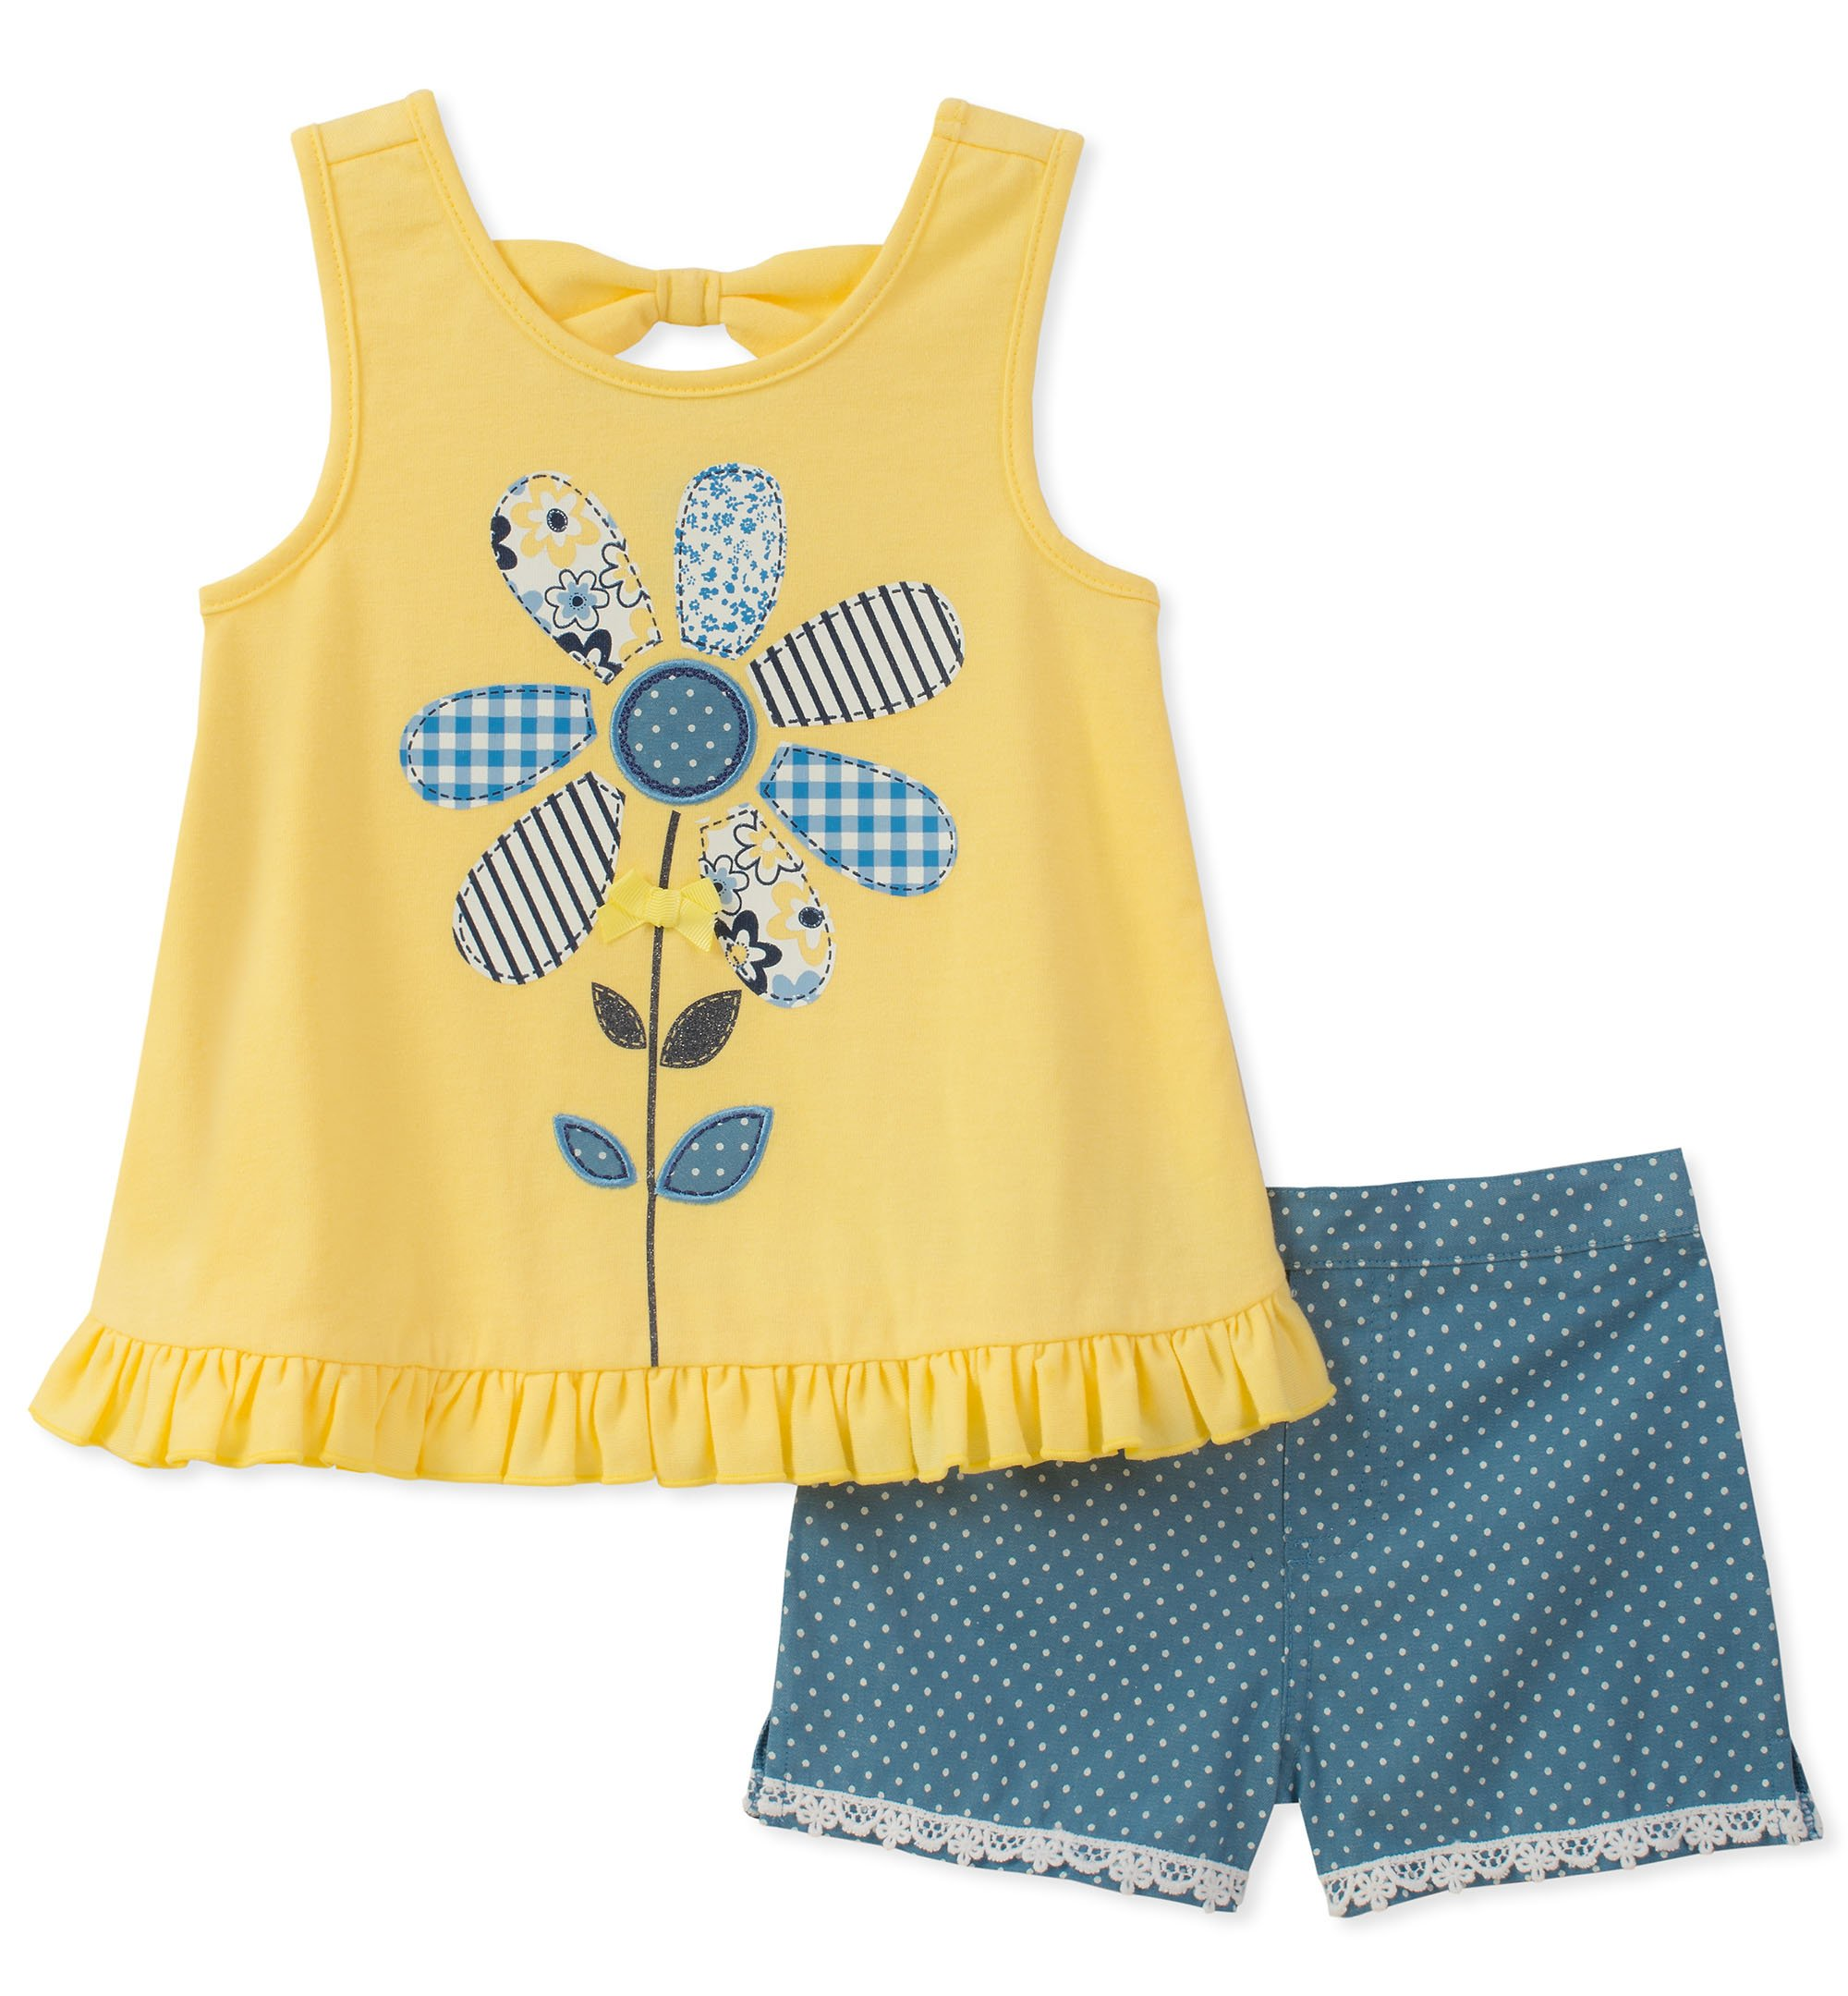 Kids Headquarters Toddler Girls' 2 Pieces Shorts Set, Yellow/Blue, 2T by Kids Headquarters